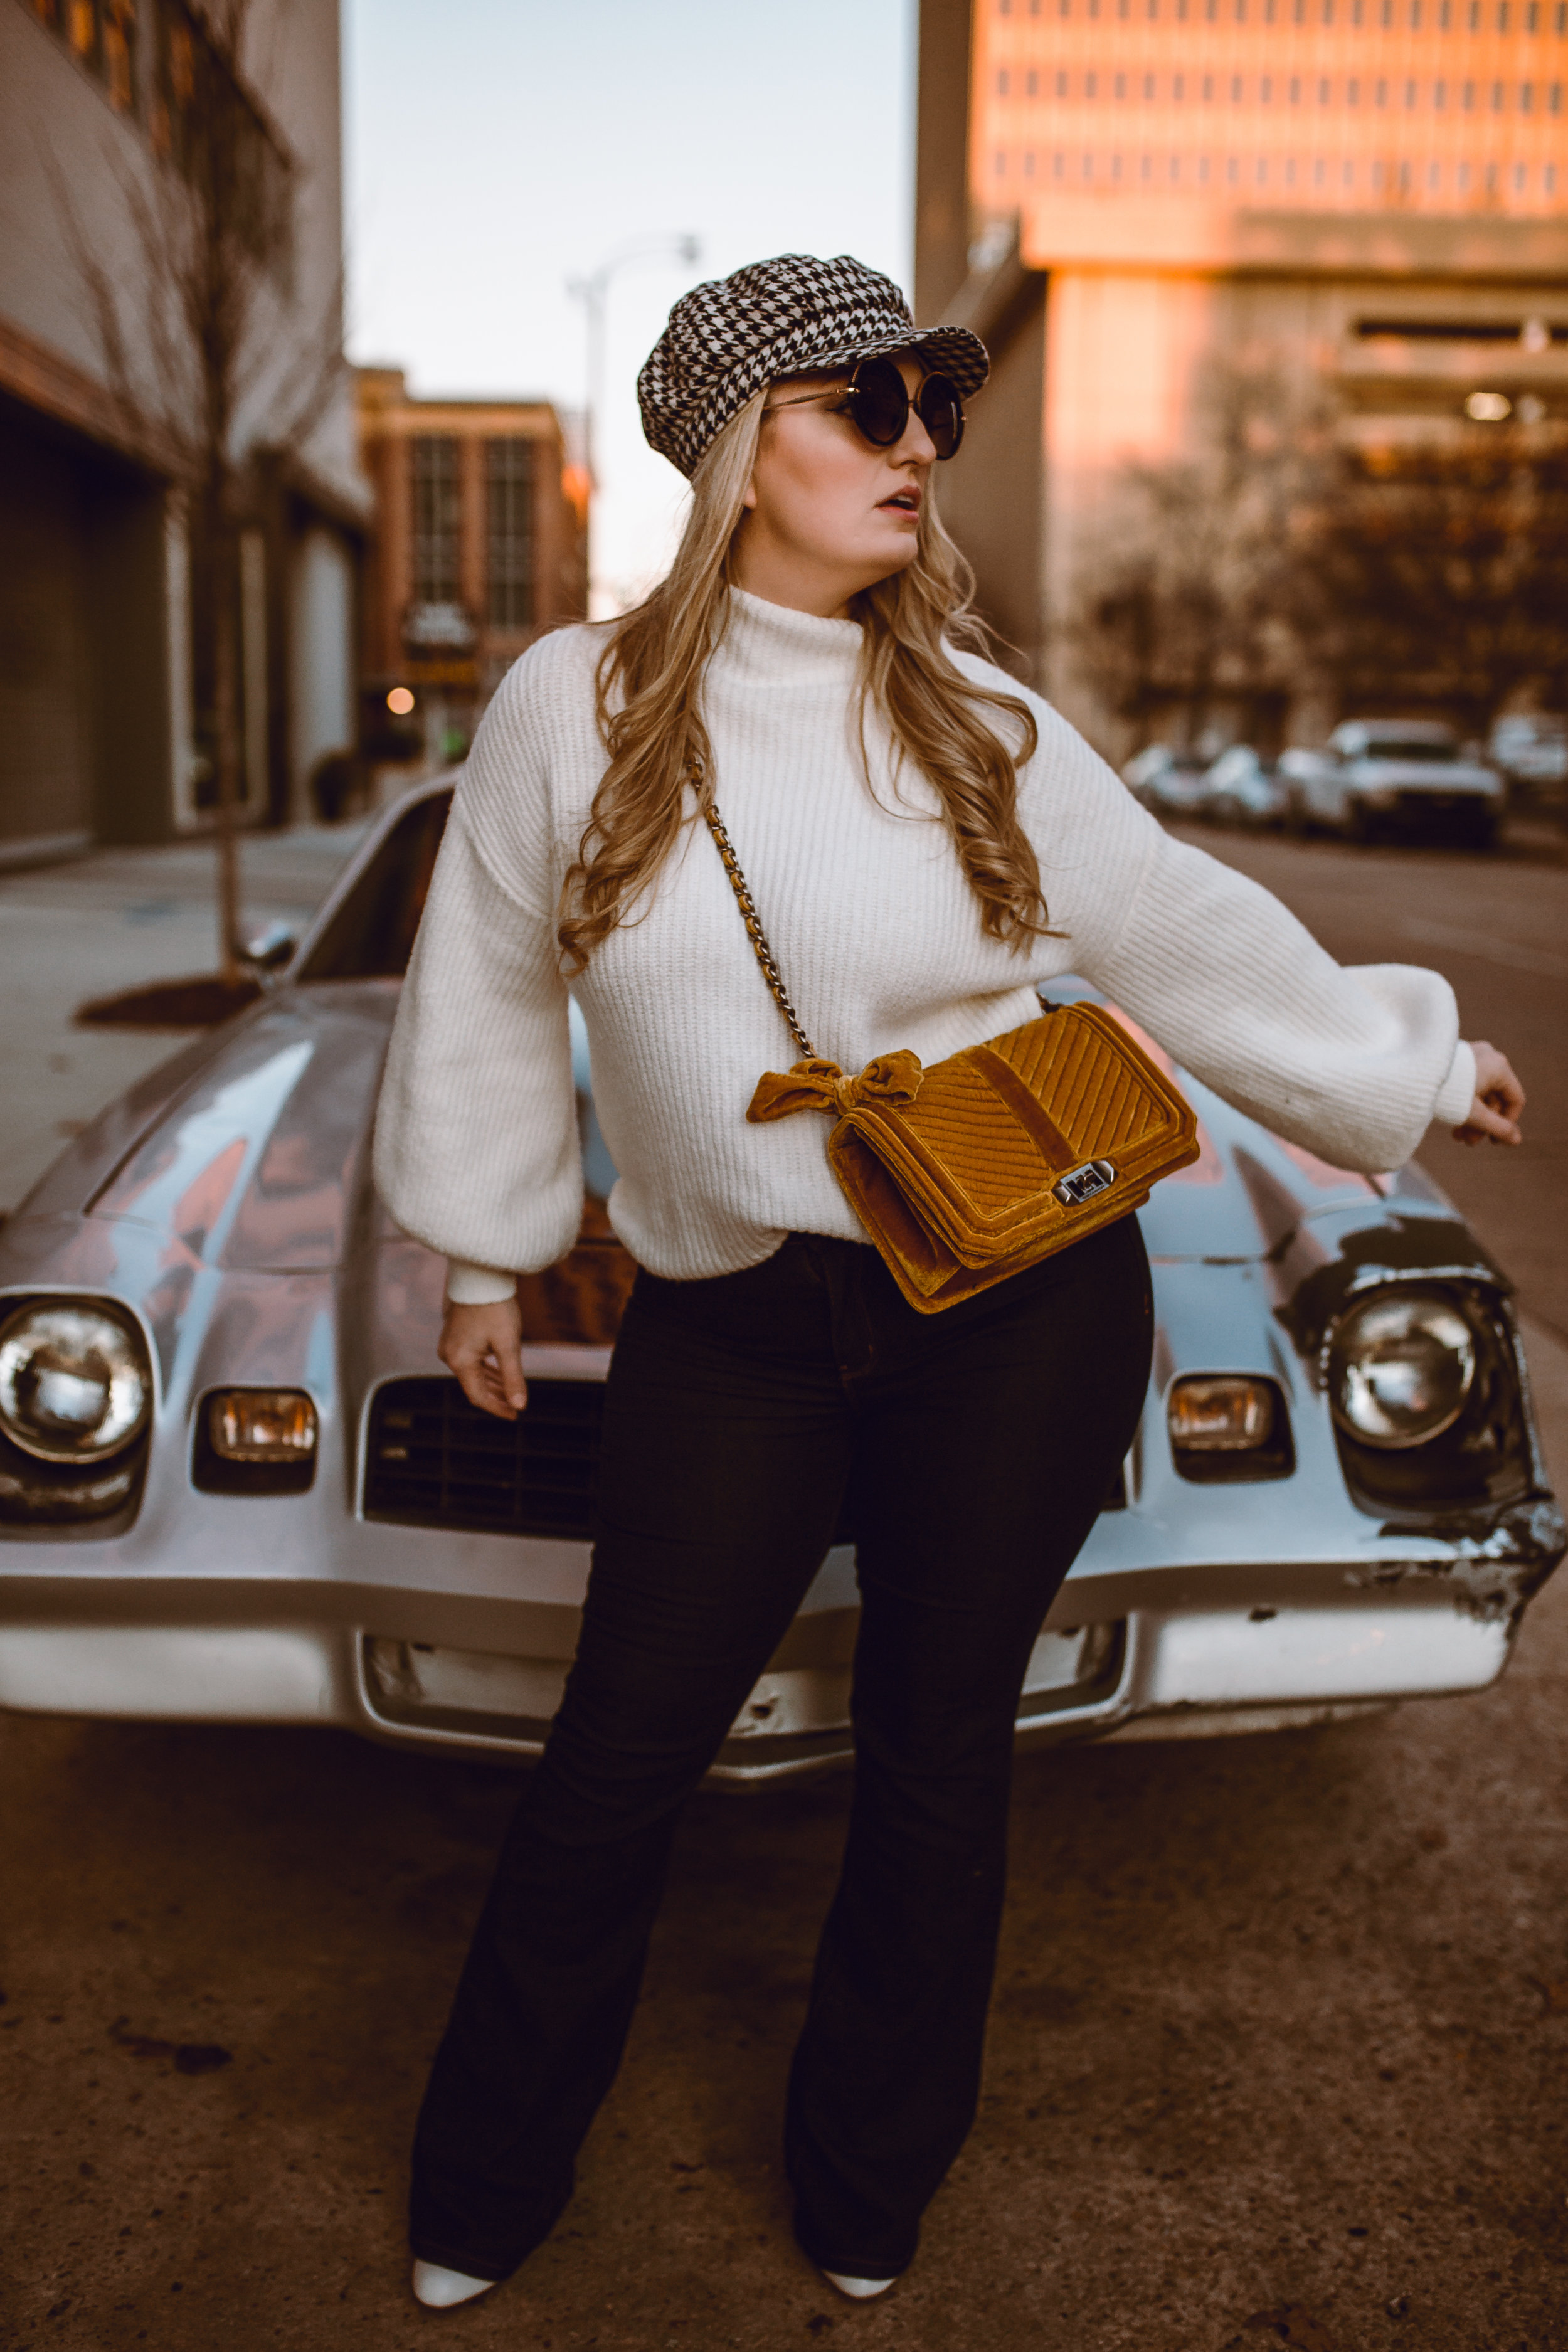 retro inspired 70's mod outfit